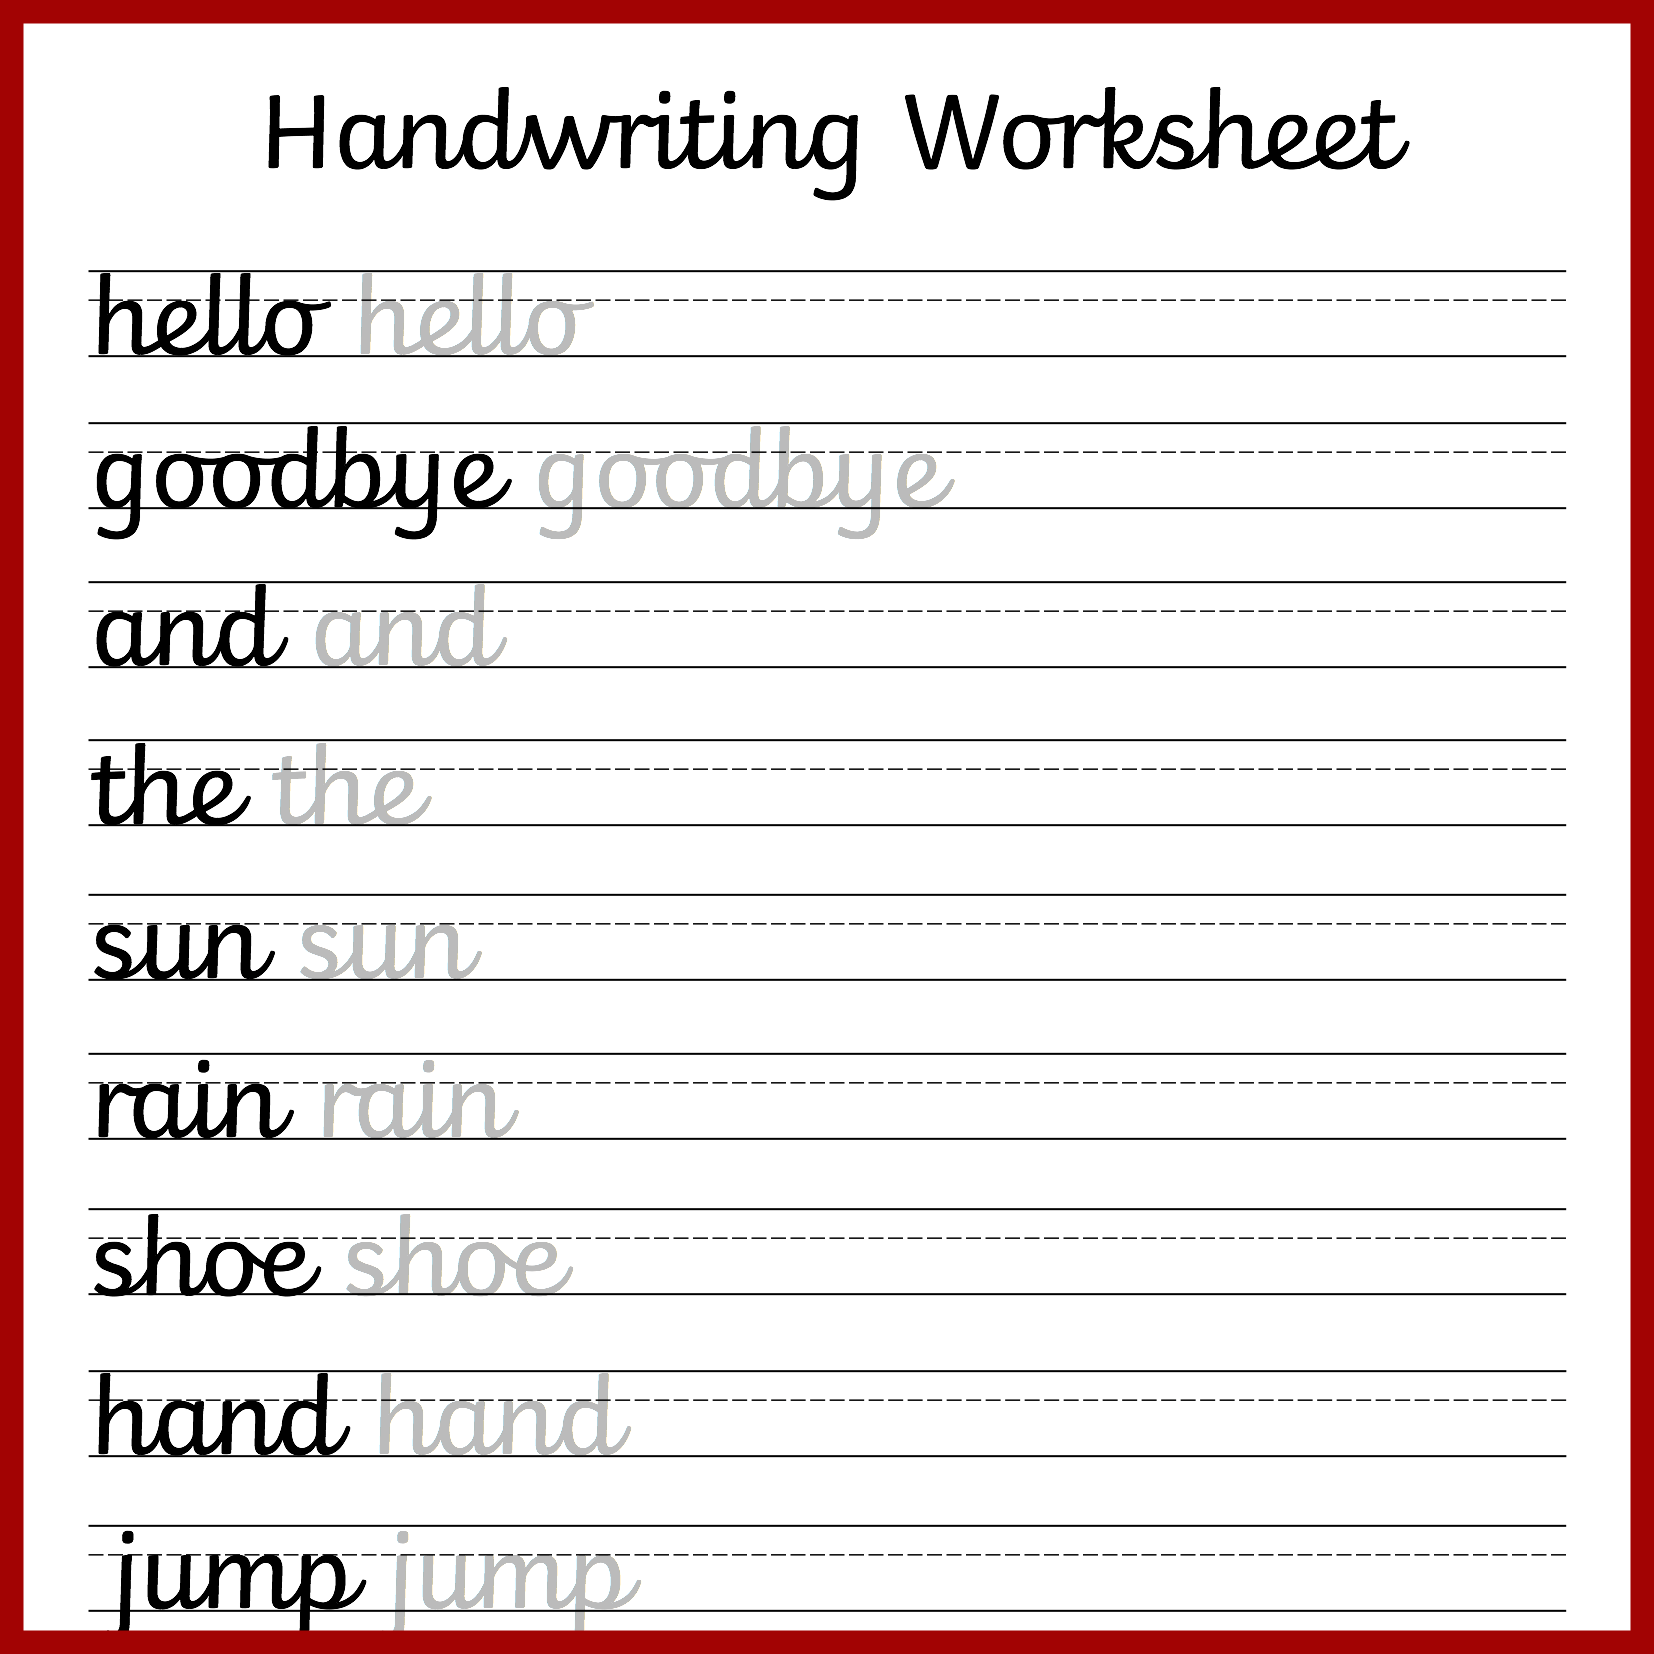 36 Printable Handwriting Worksheets Uk Printable Uk